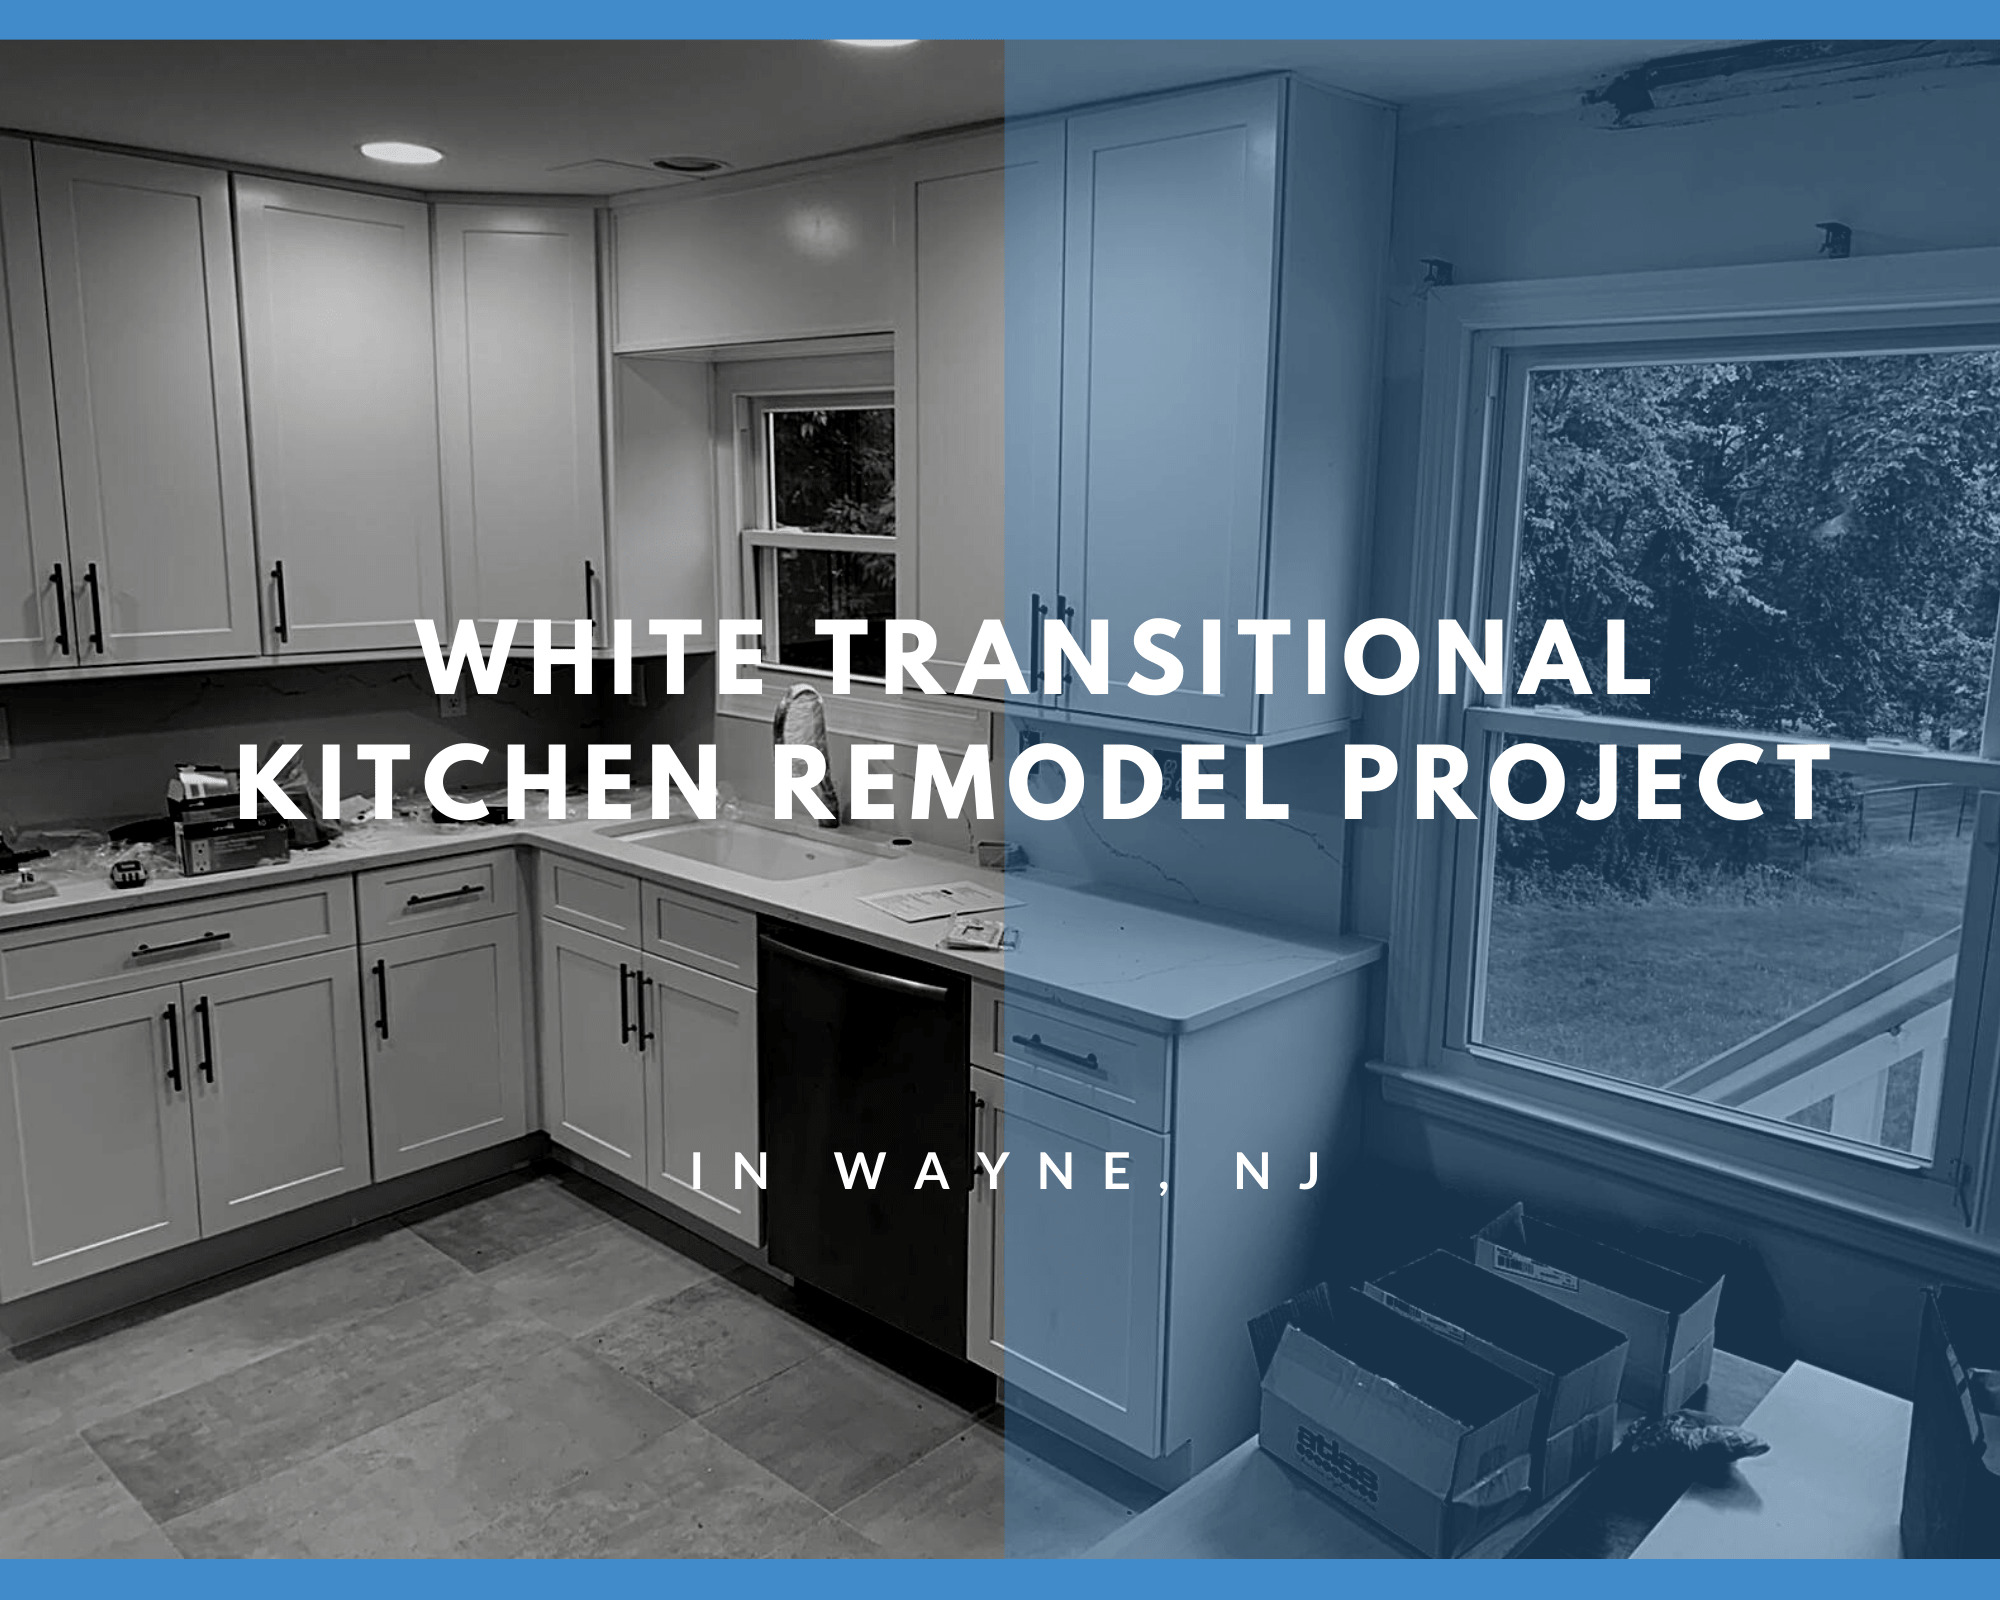 White Transitional Kitchen Remodel Project Reveal in Wayne, NJ